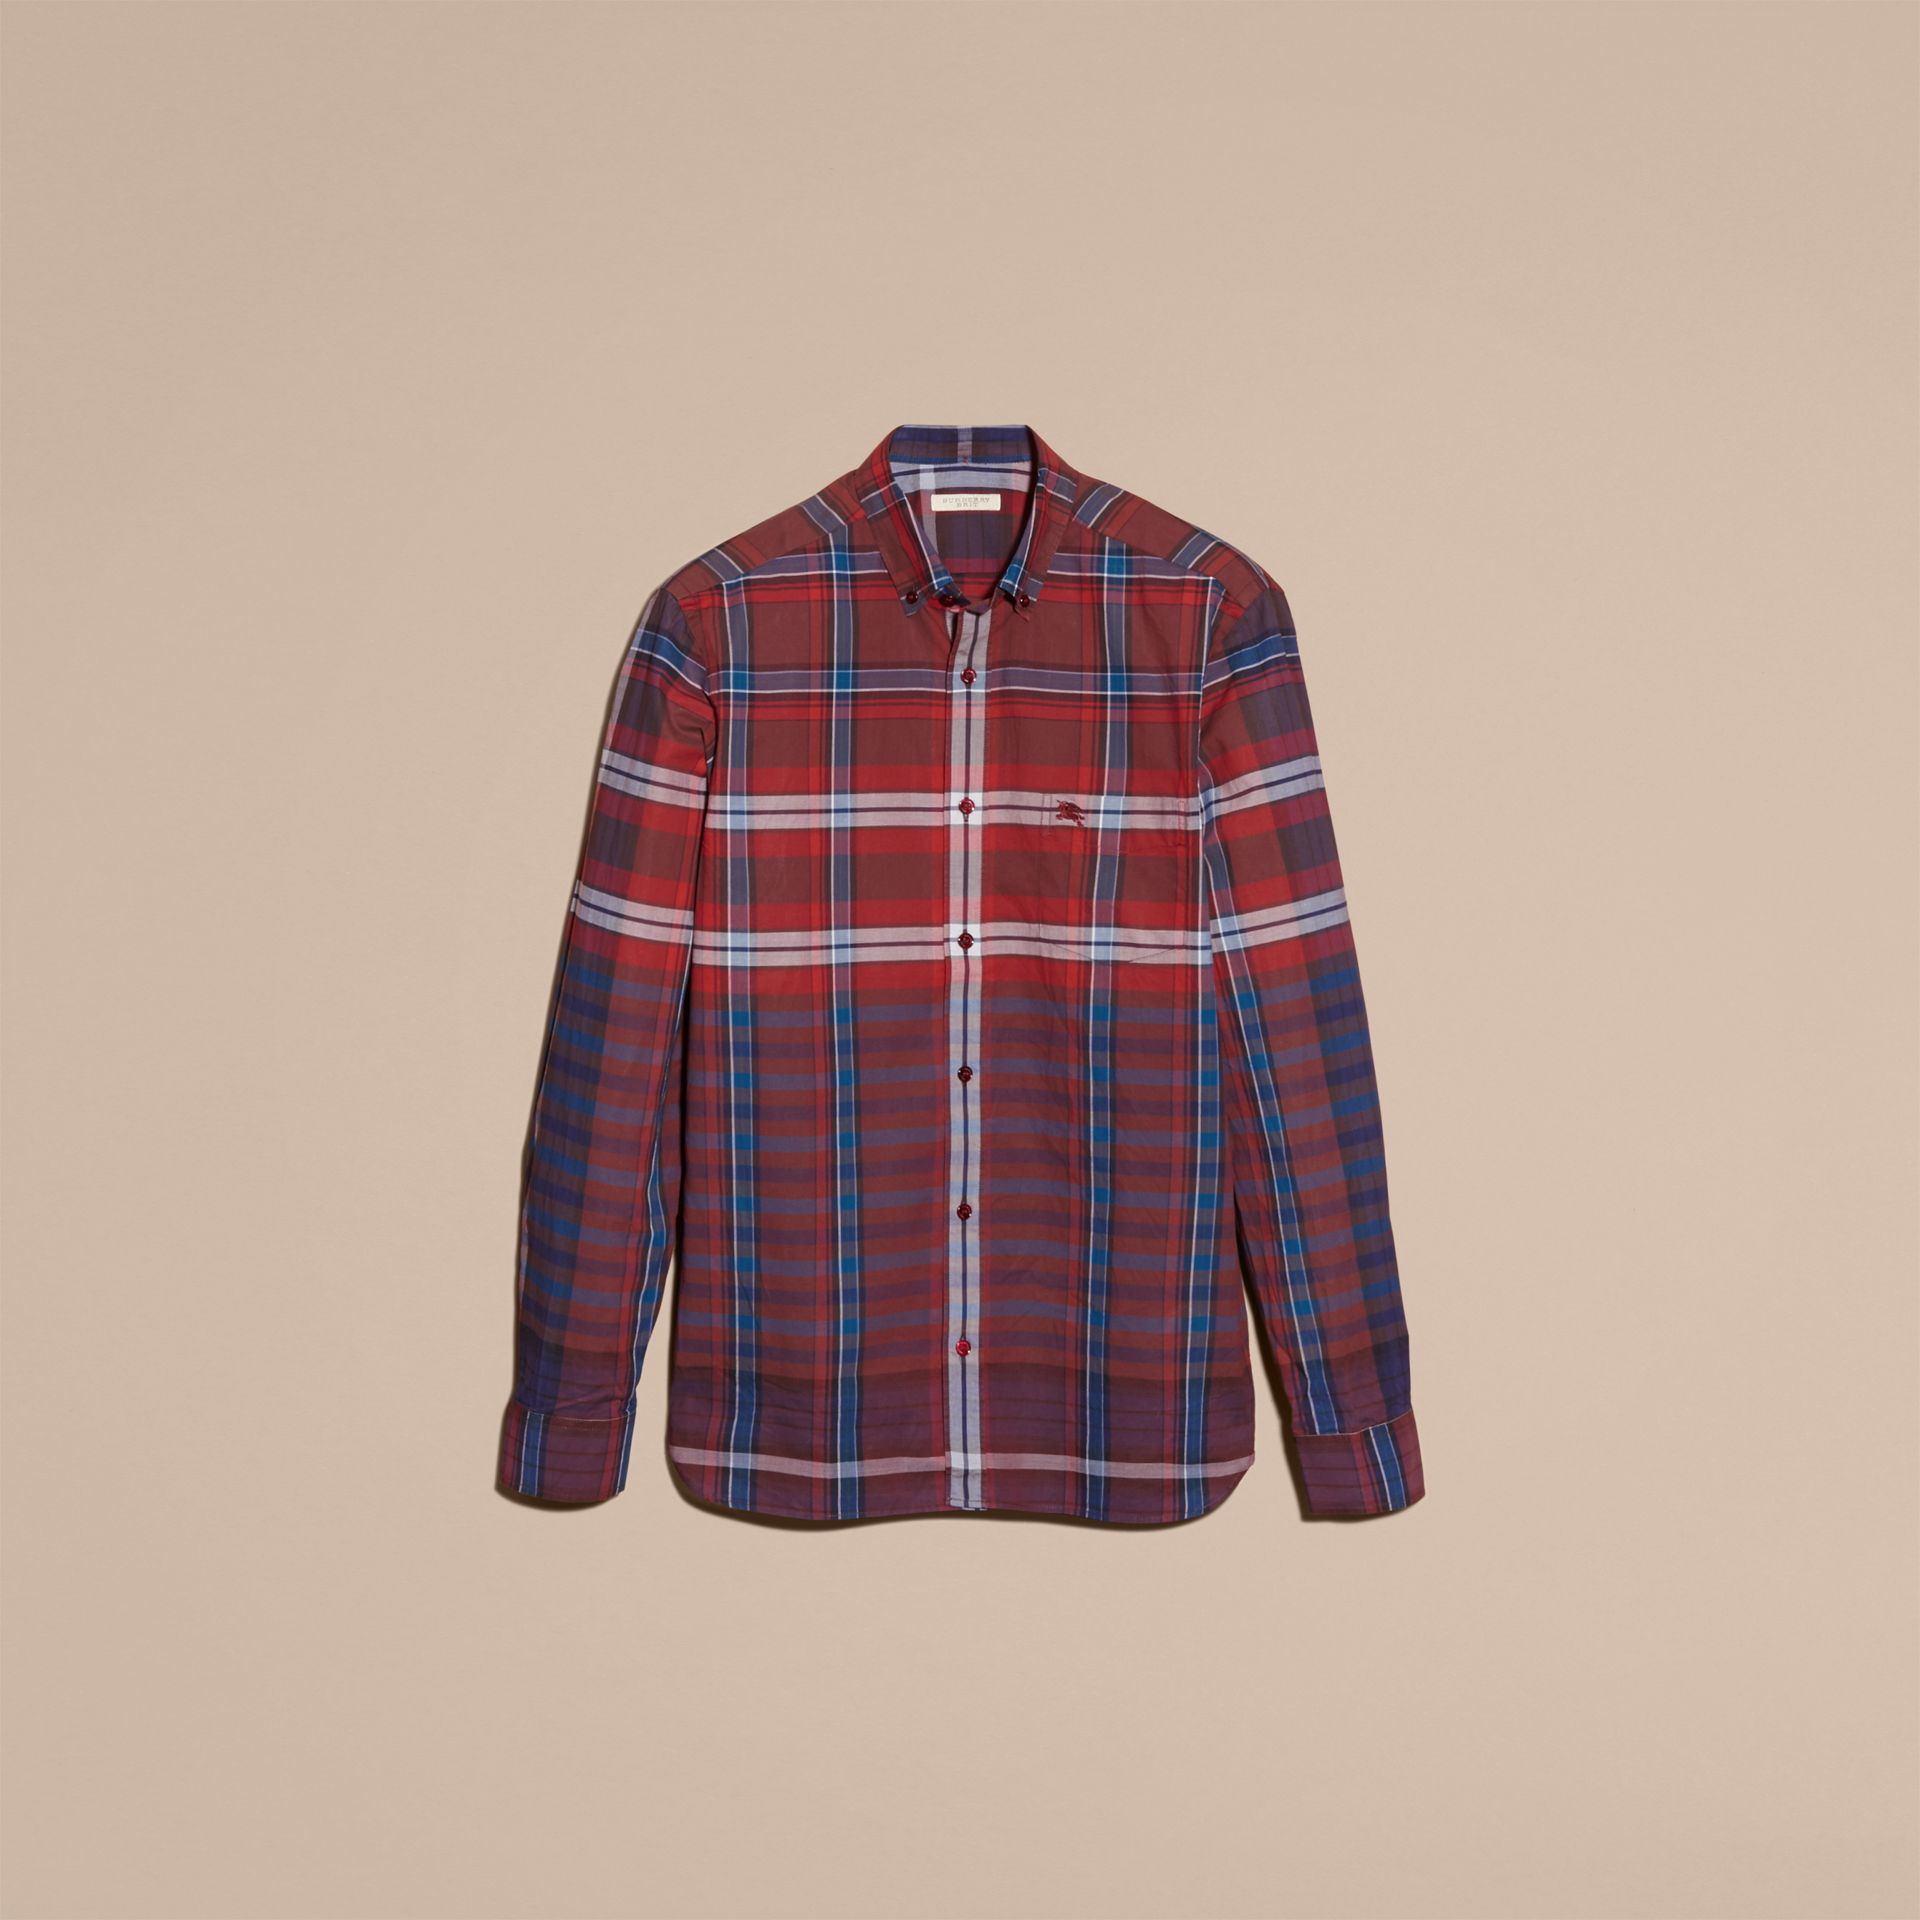 Burgundy red Button-down Collar Check Cotton Shirt Burgundy Red - gallery image 4